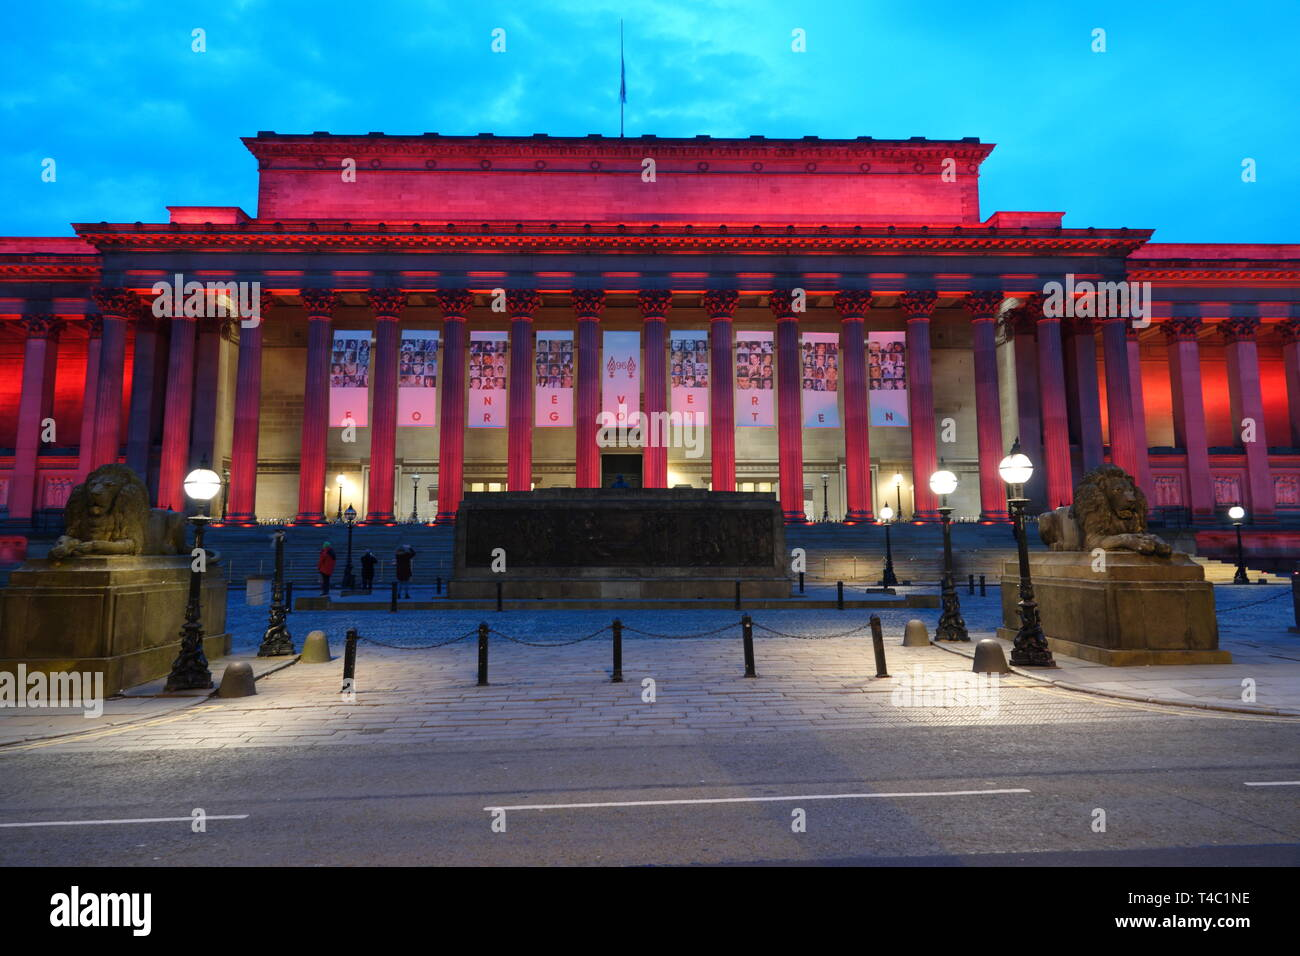 Liverpool UK, 15 avril 2019. St George's Hall illuminé en rouge pour marquer le 30e anniversaire de la catastrophe de Hillsborough qui 96 supporters de Liverpool ont perdu la vie. Credit:Ken Biggs/Alamy Live News. Photo Stock